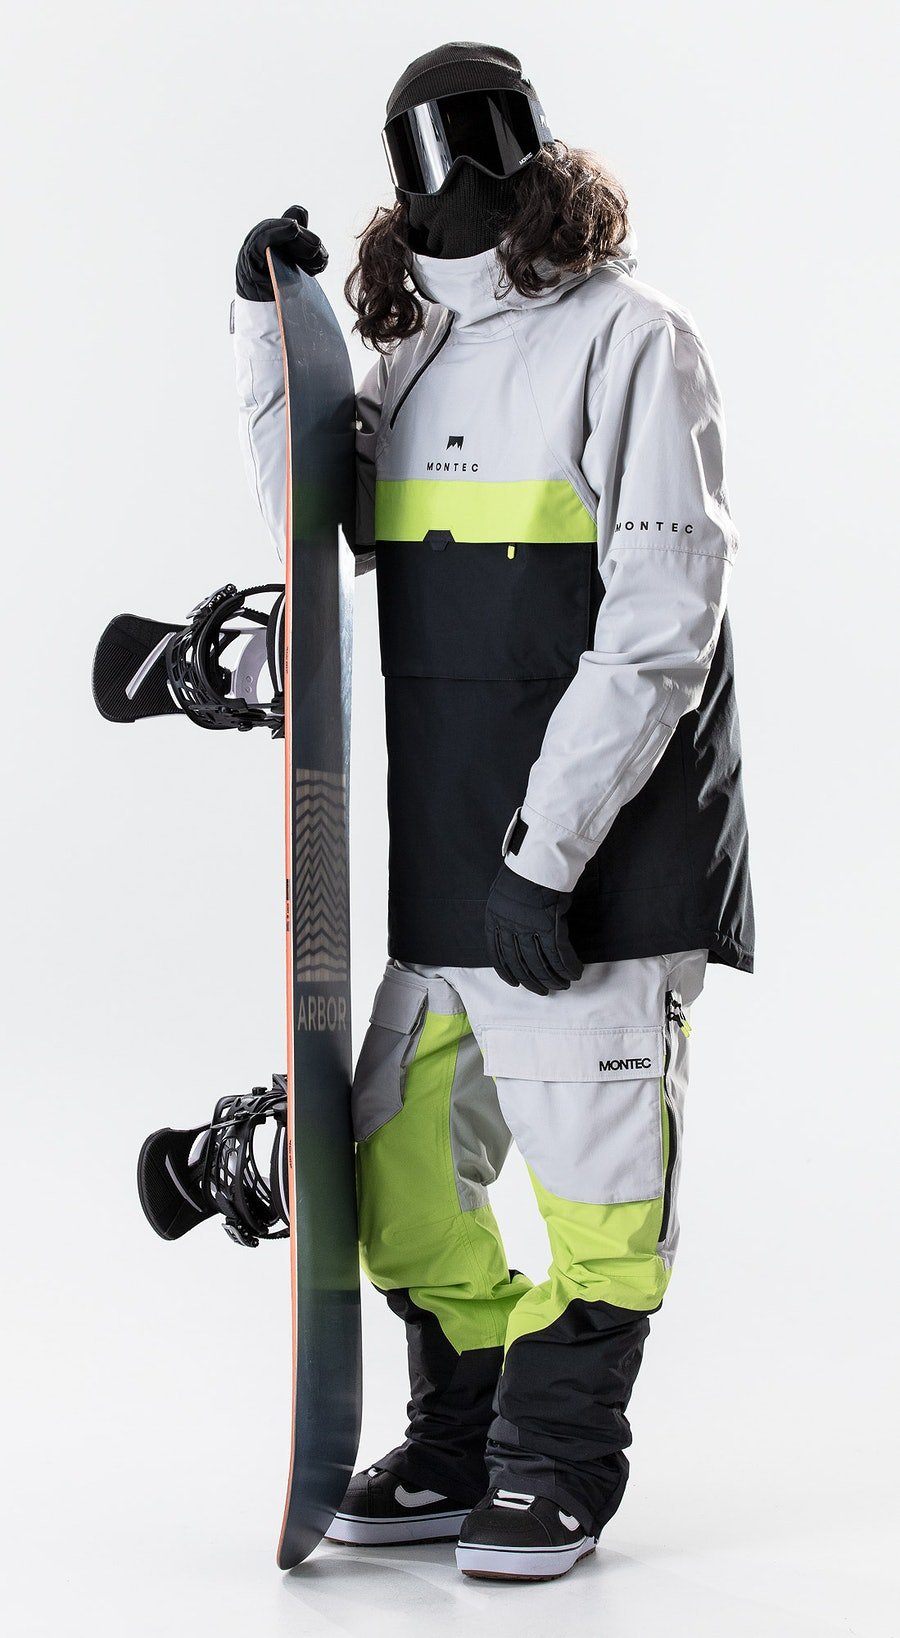 Montec Dune Light Grey/Neon Yellow/Black Snowboardkleidung Multi